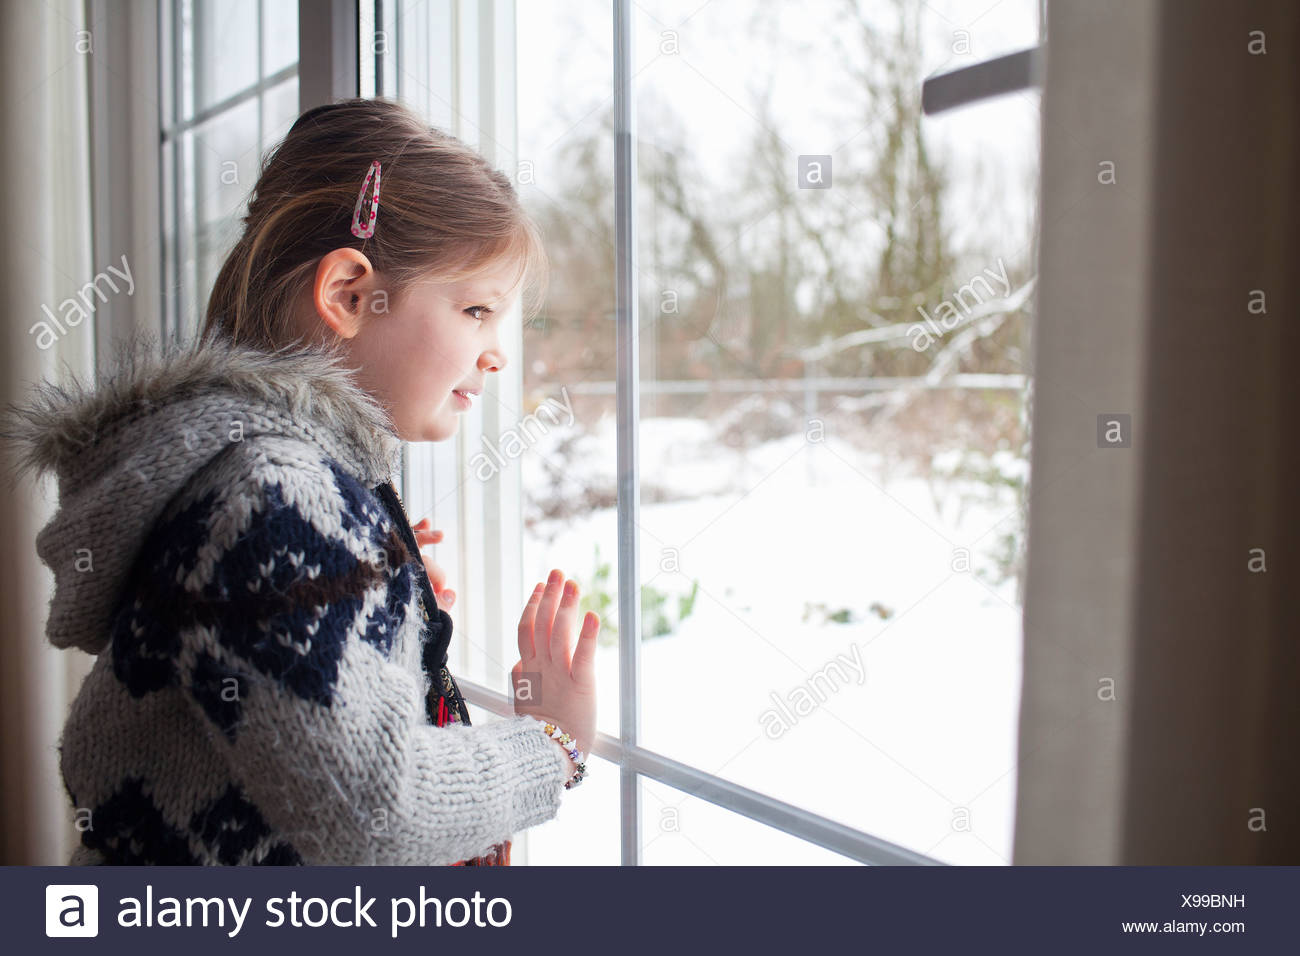 Young girl looking out of window at garden in snow - Stock Image